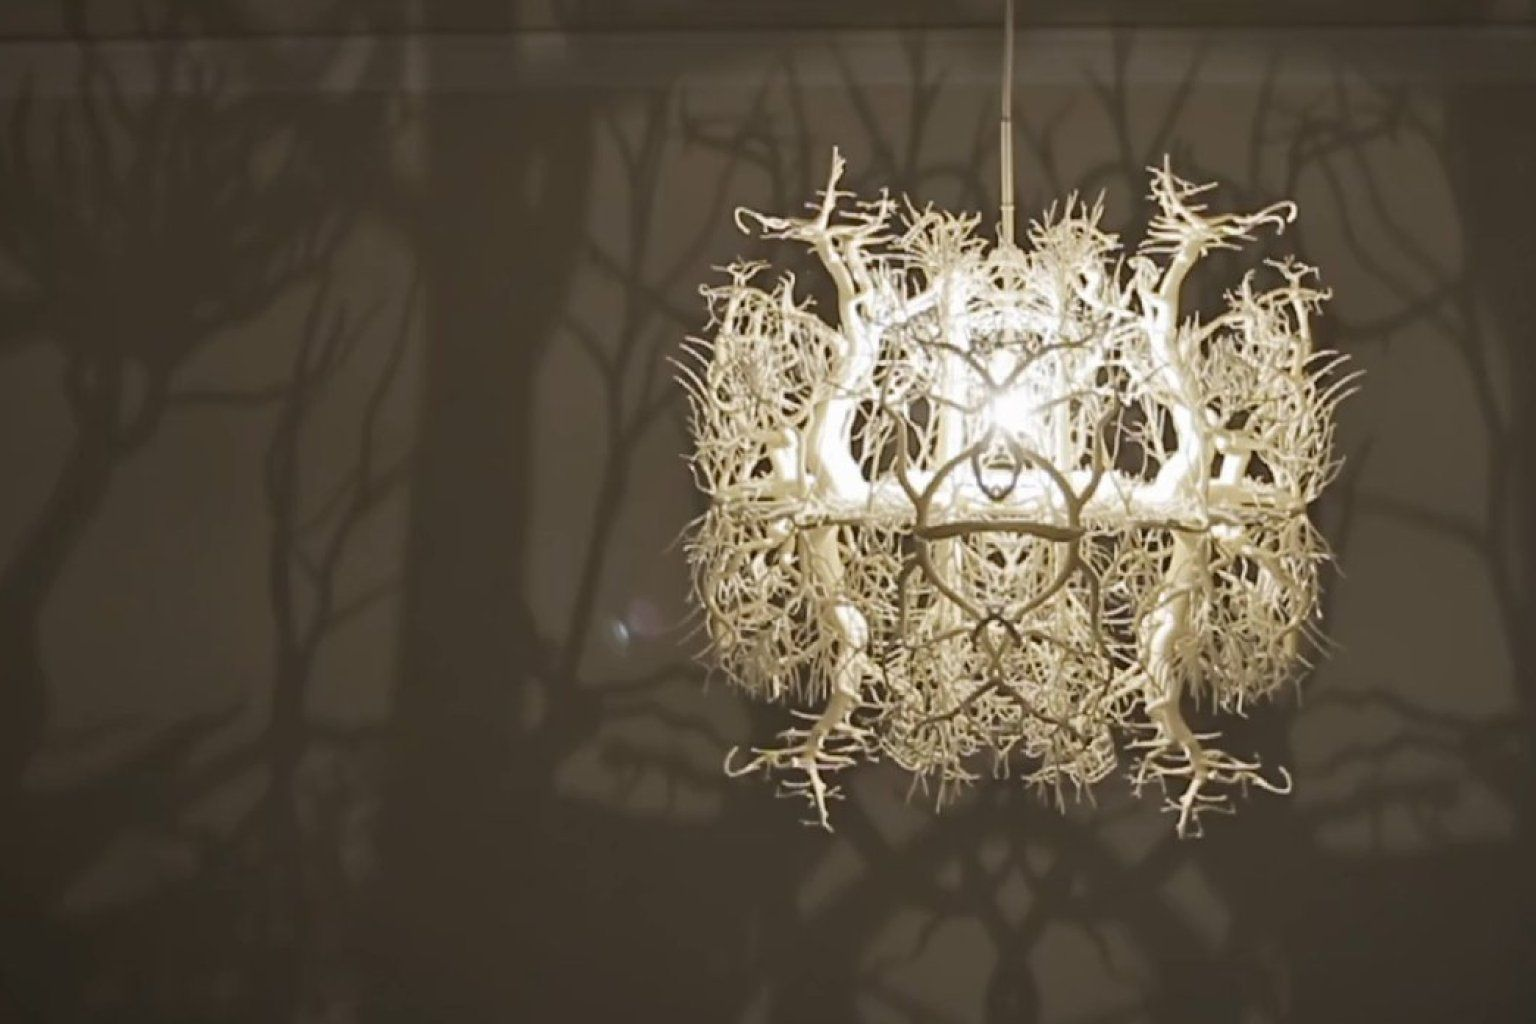 Whoa now this is how you create a focal point chandeliers lights forms in nature chandelier aloadofball Gallery